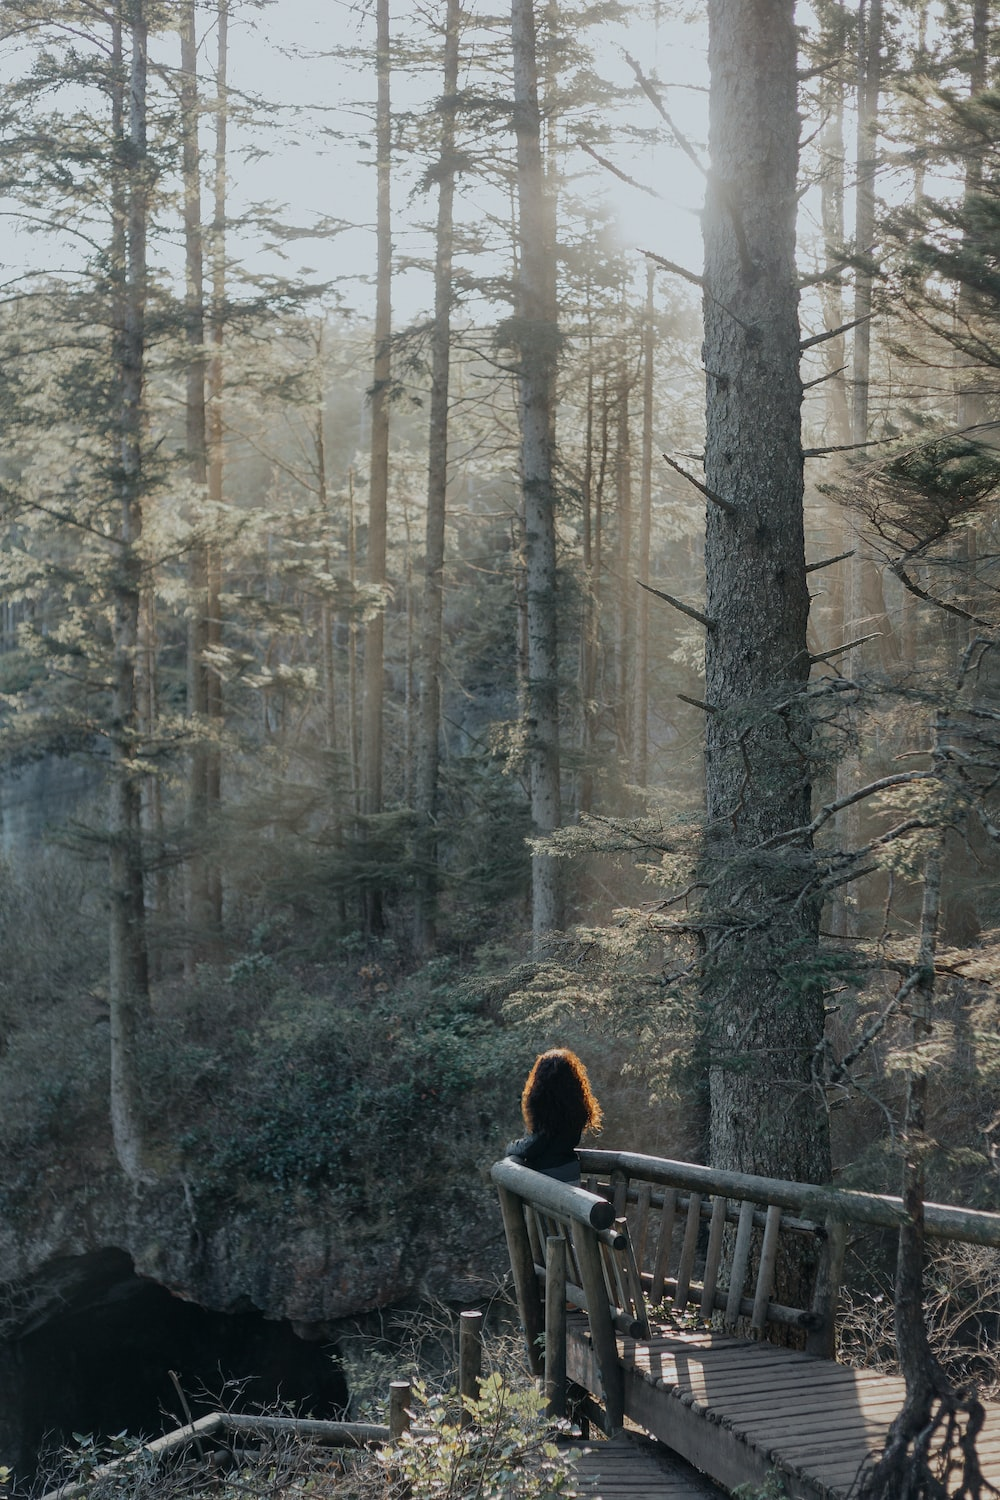 person standing near brown wooden railings in the forest